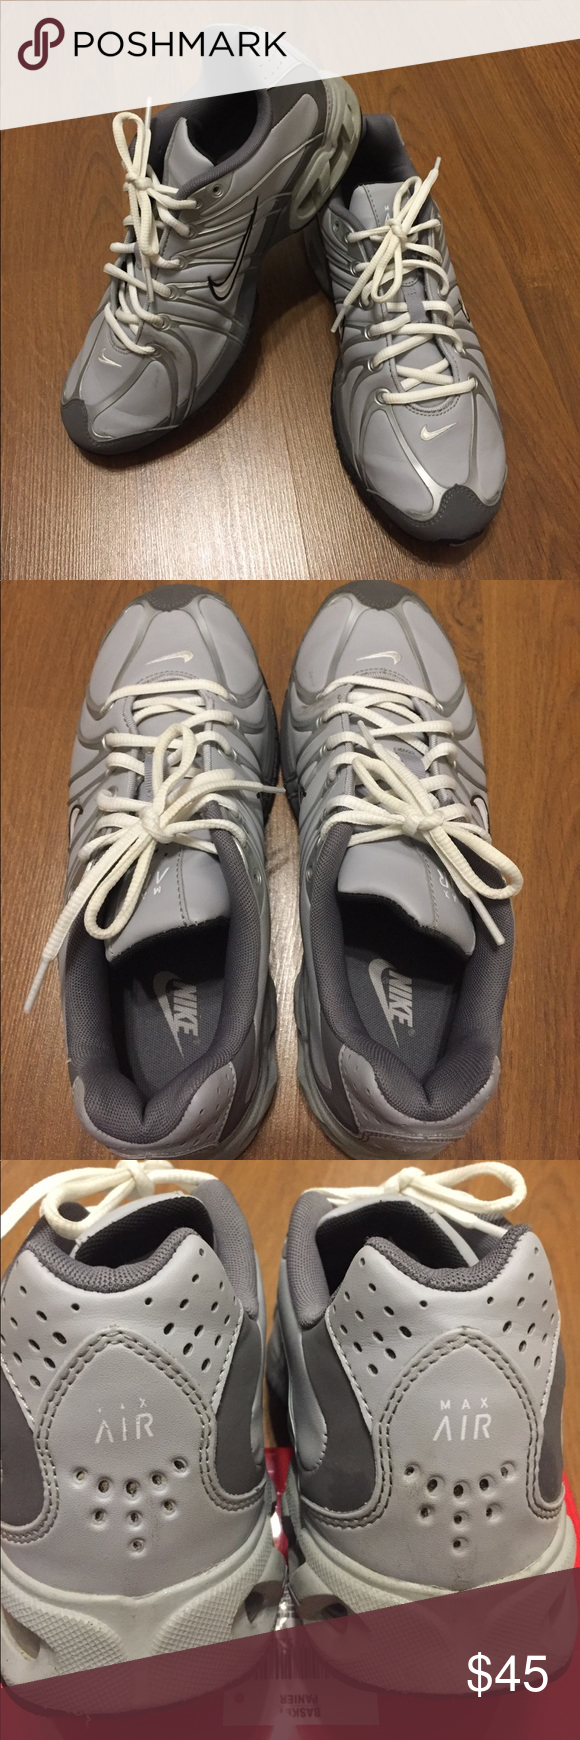 b913d391622 Nike air max torch 5 Nike Air Max Torch 5 SL 316125-012 Gray   Silver Men s  Running Shoes Size 10 Very Gently used. Nike Shoes Athletic Shoes